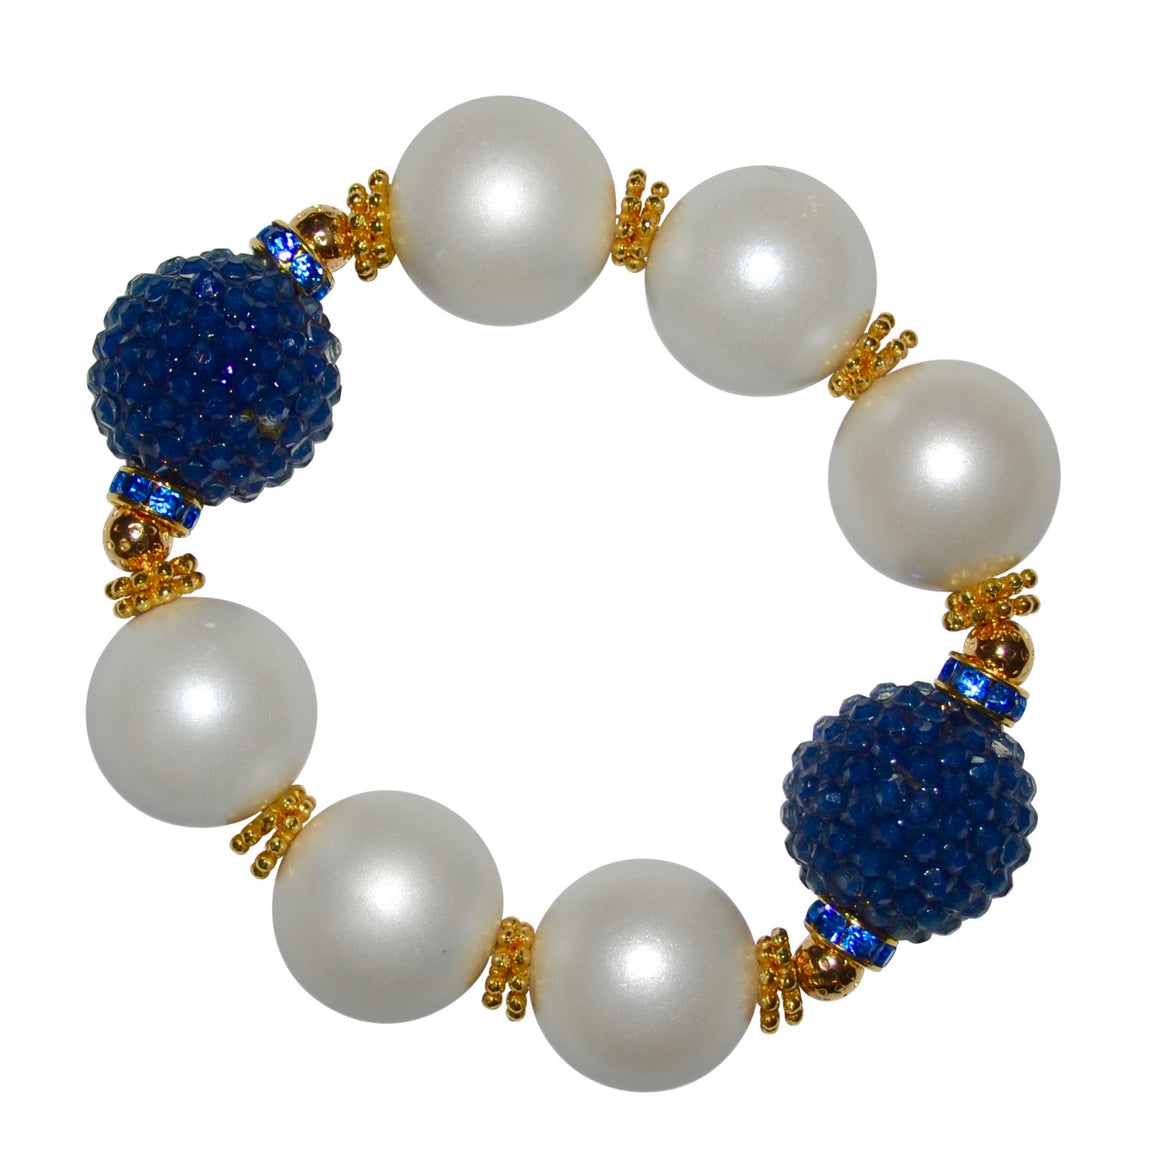 CAMILLA STATEMENT BRACELET IN MATTE PEARL AND NAVY BLUE